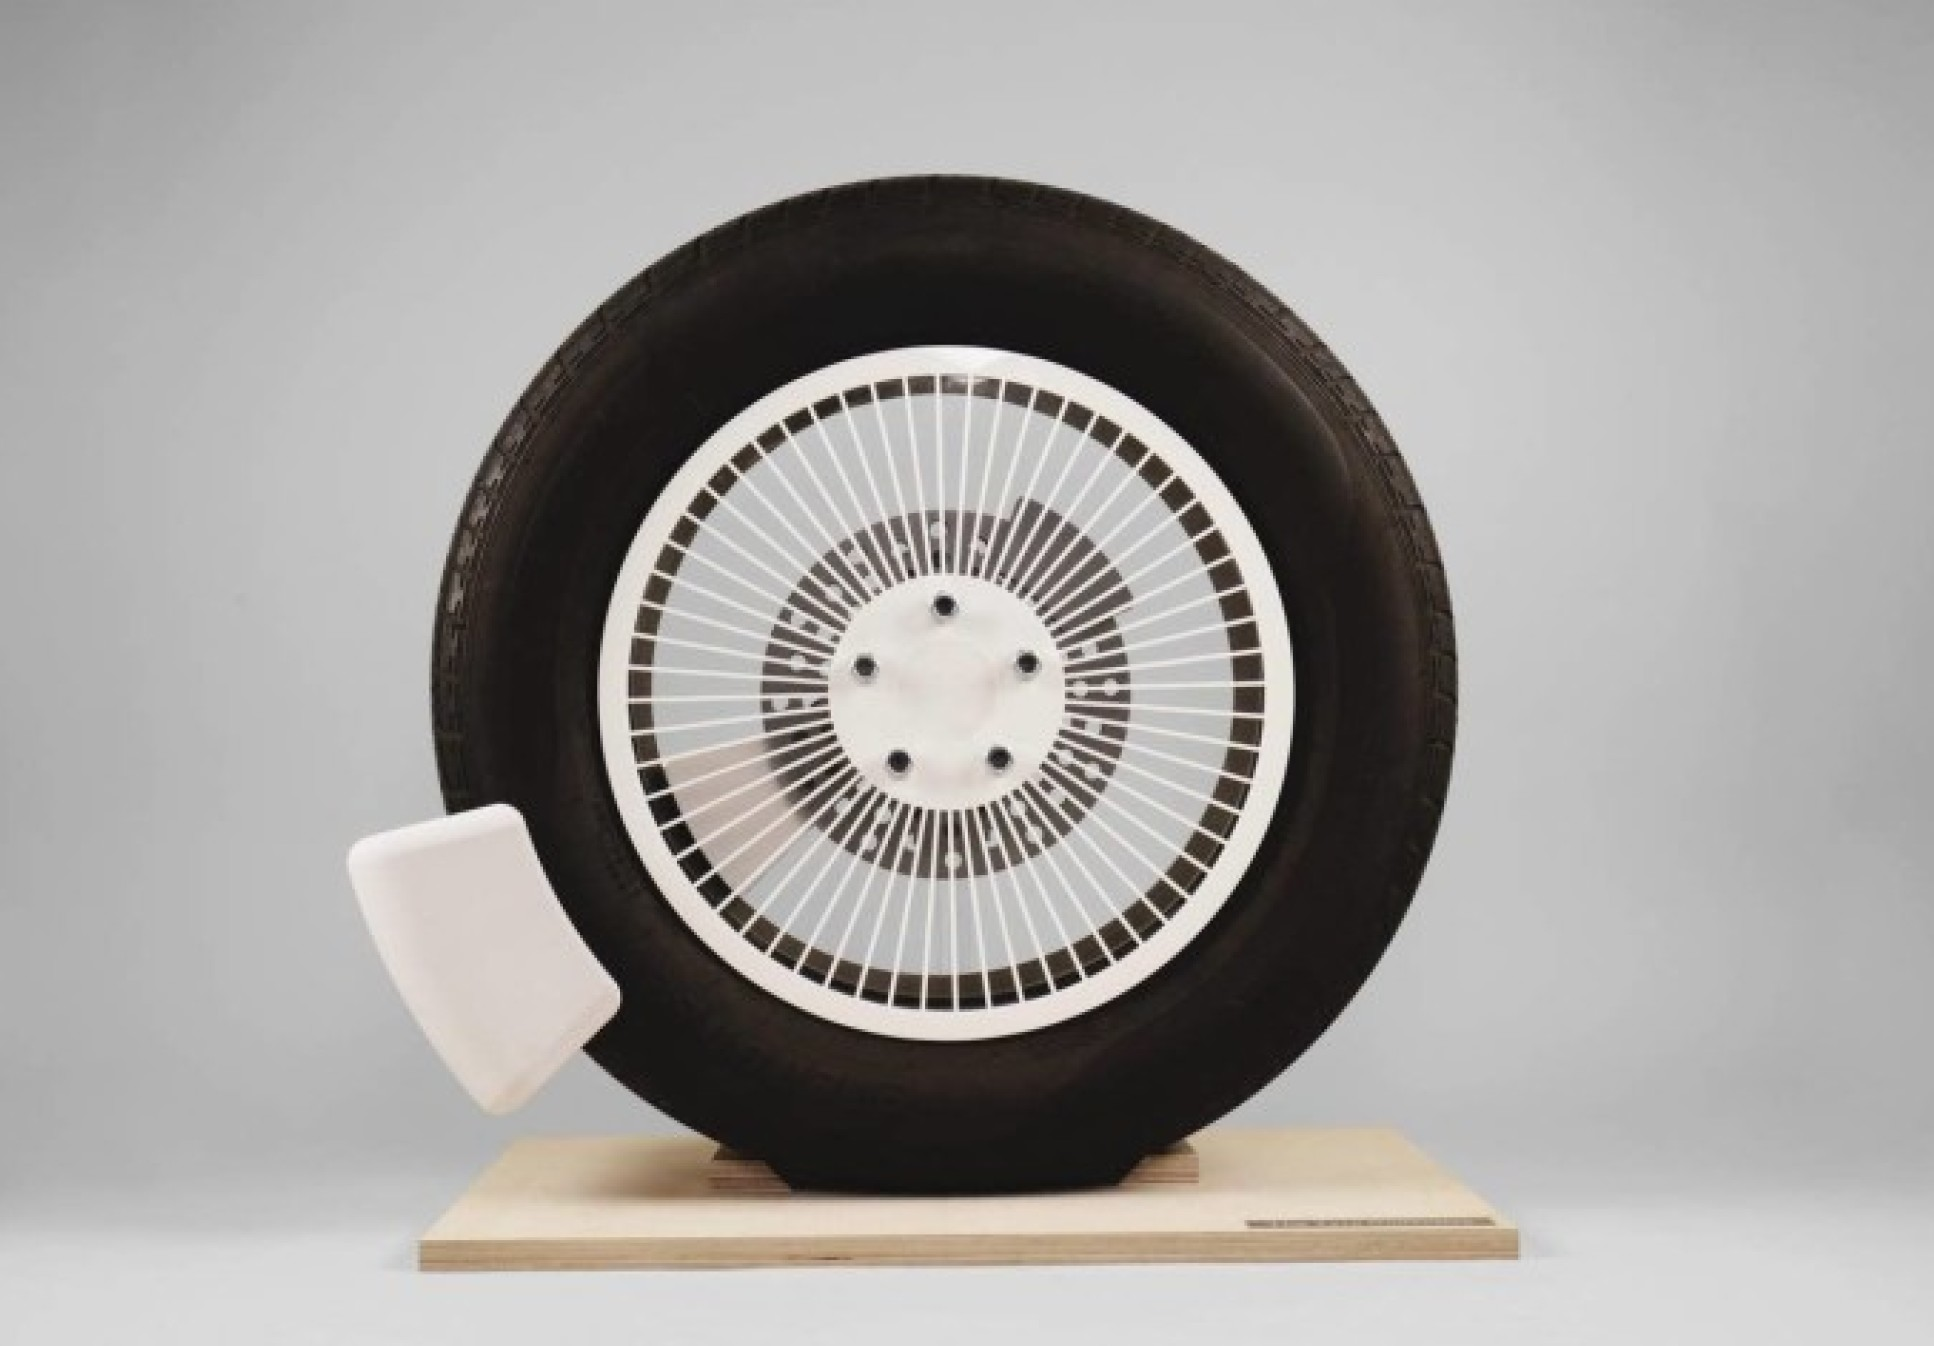 A device fitted to a tyre to collect emissions